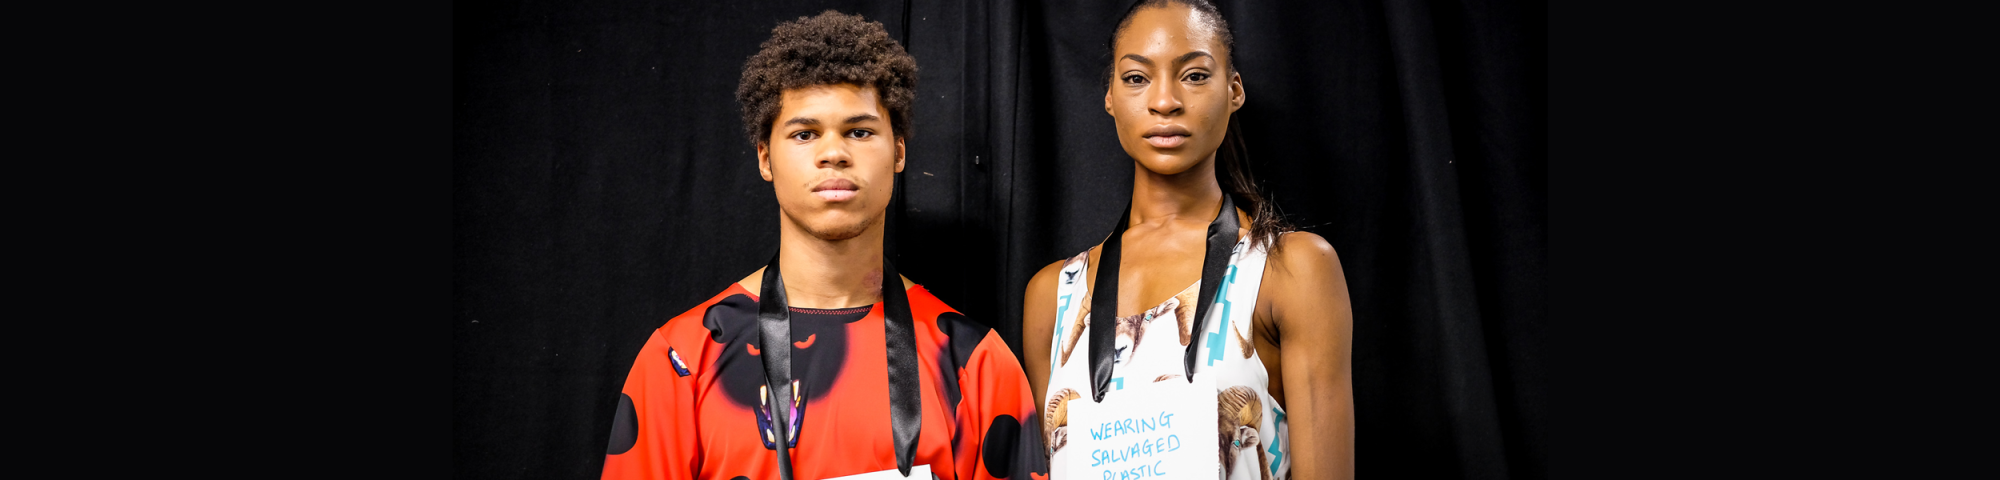 Two models wearing signs saying 'wearing salvaged plastic' from Vin+Omi's LFW presentation